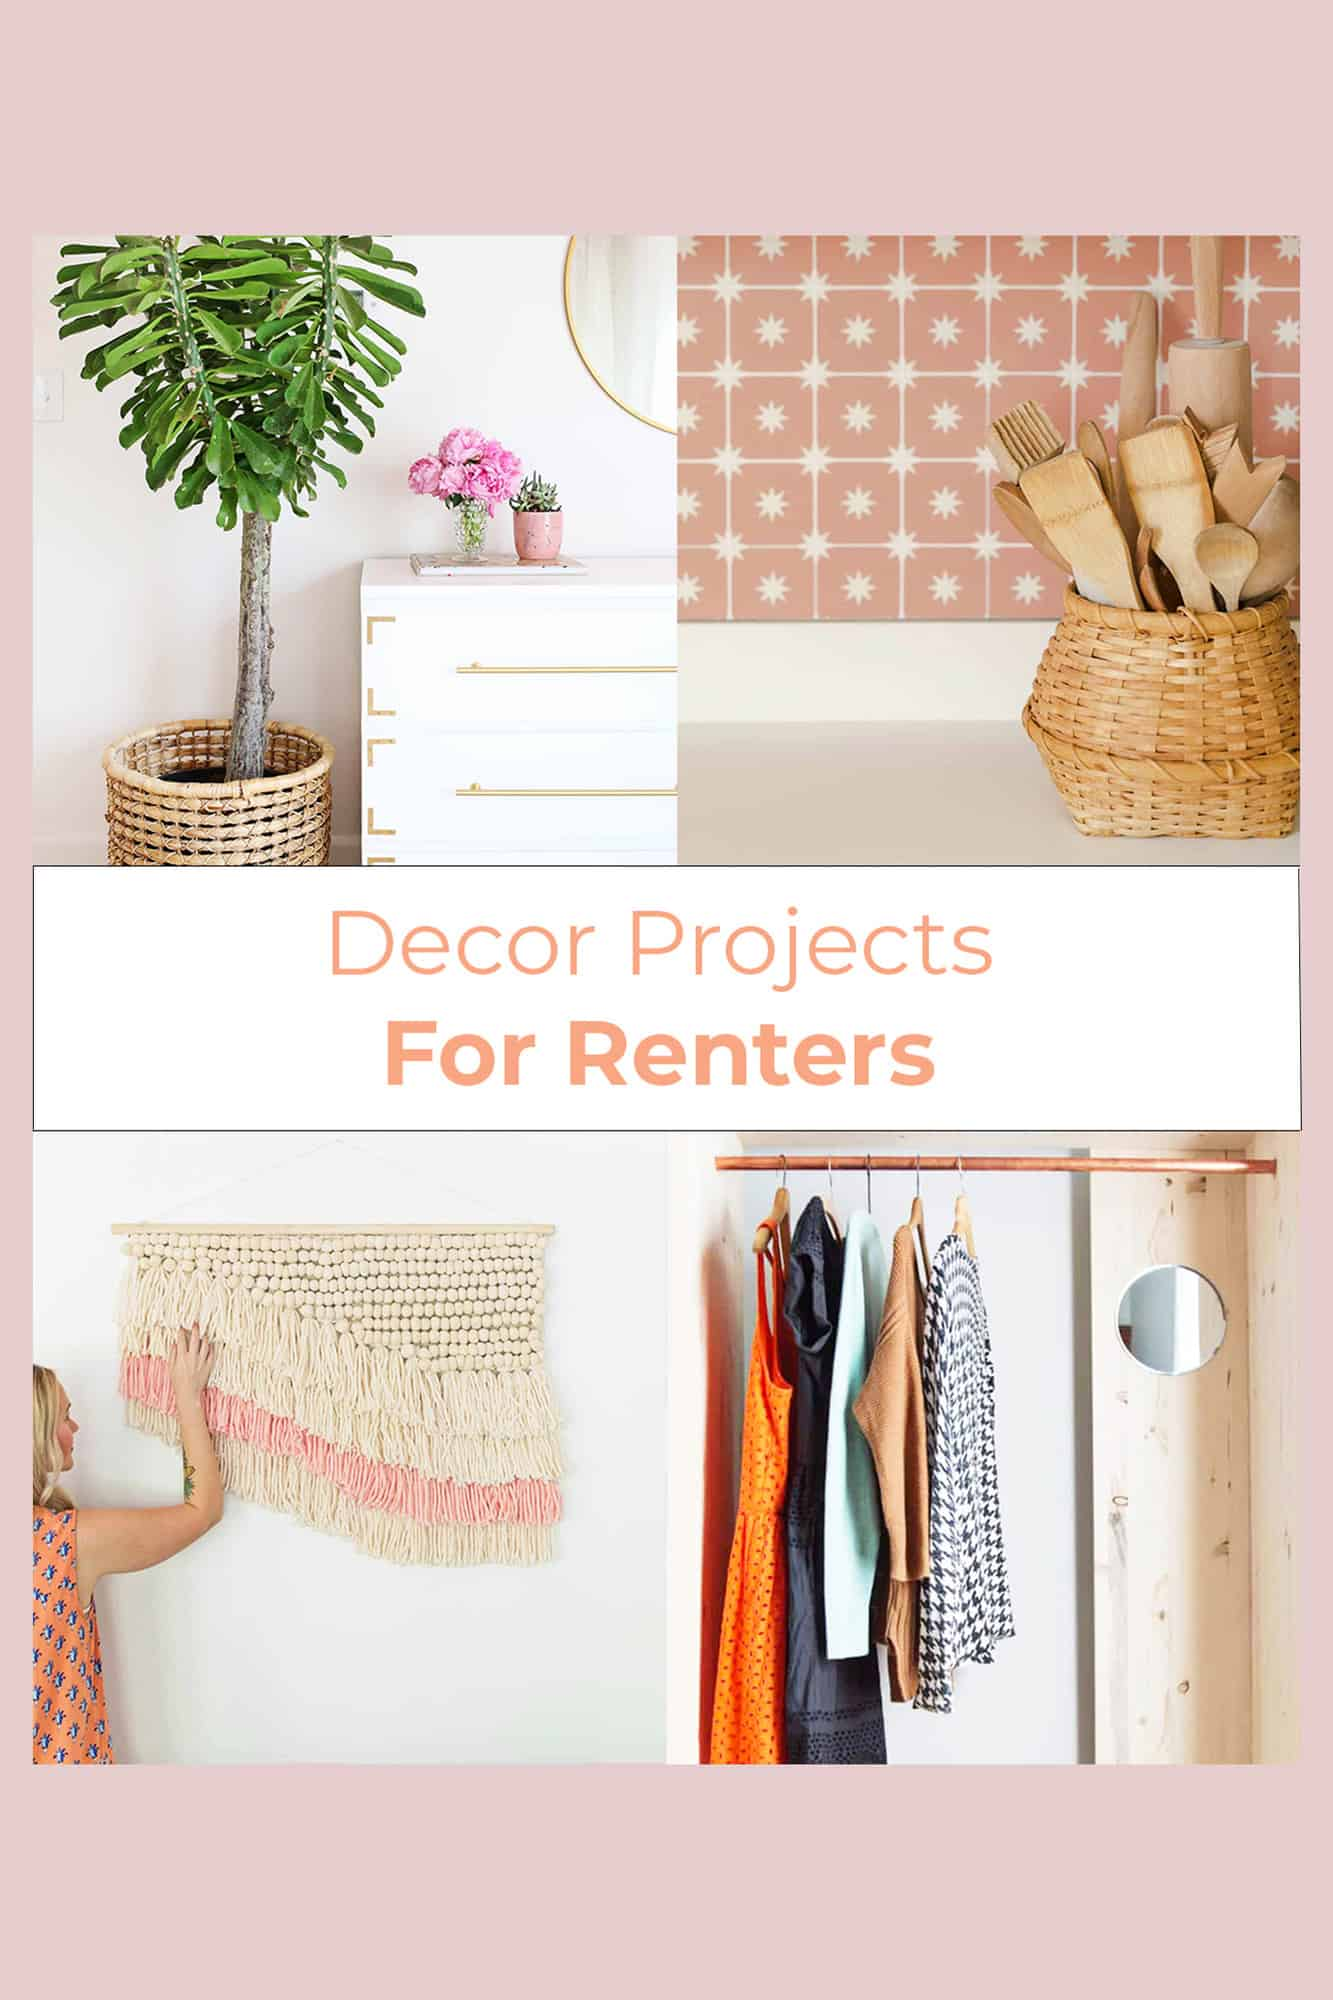 Decor projects for renters